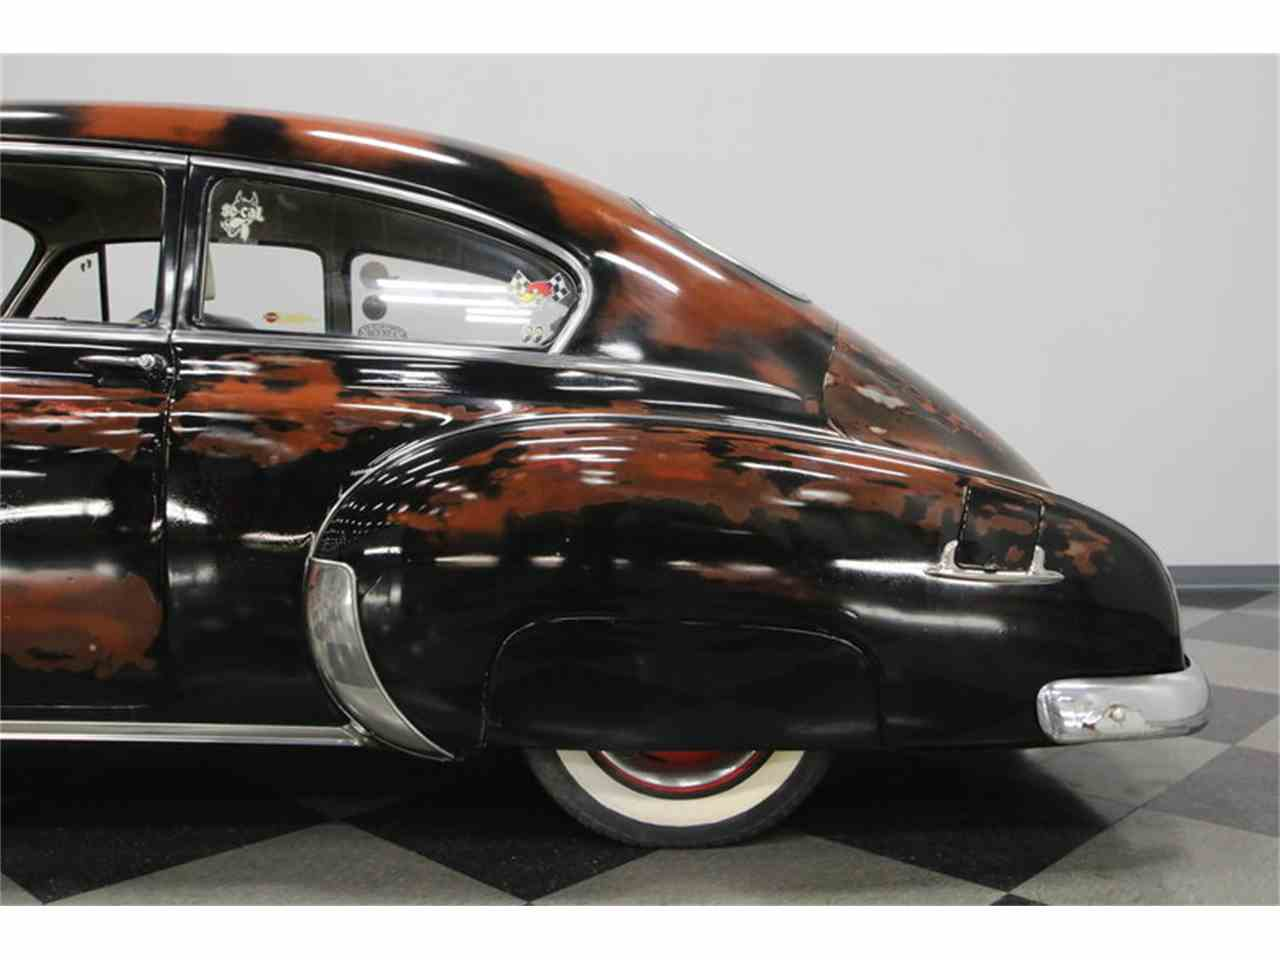 Large Picture of Classic 1950 Chevrolet Styleline Deluxe - $15,995.00 - MZSM